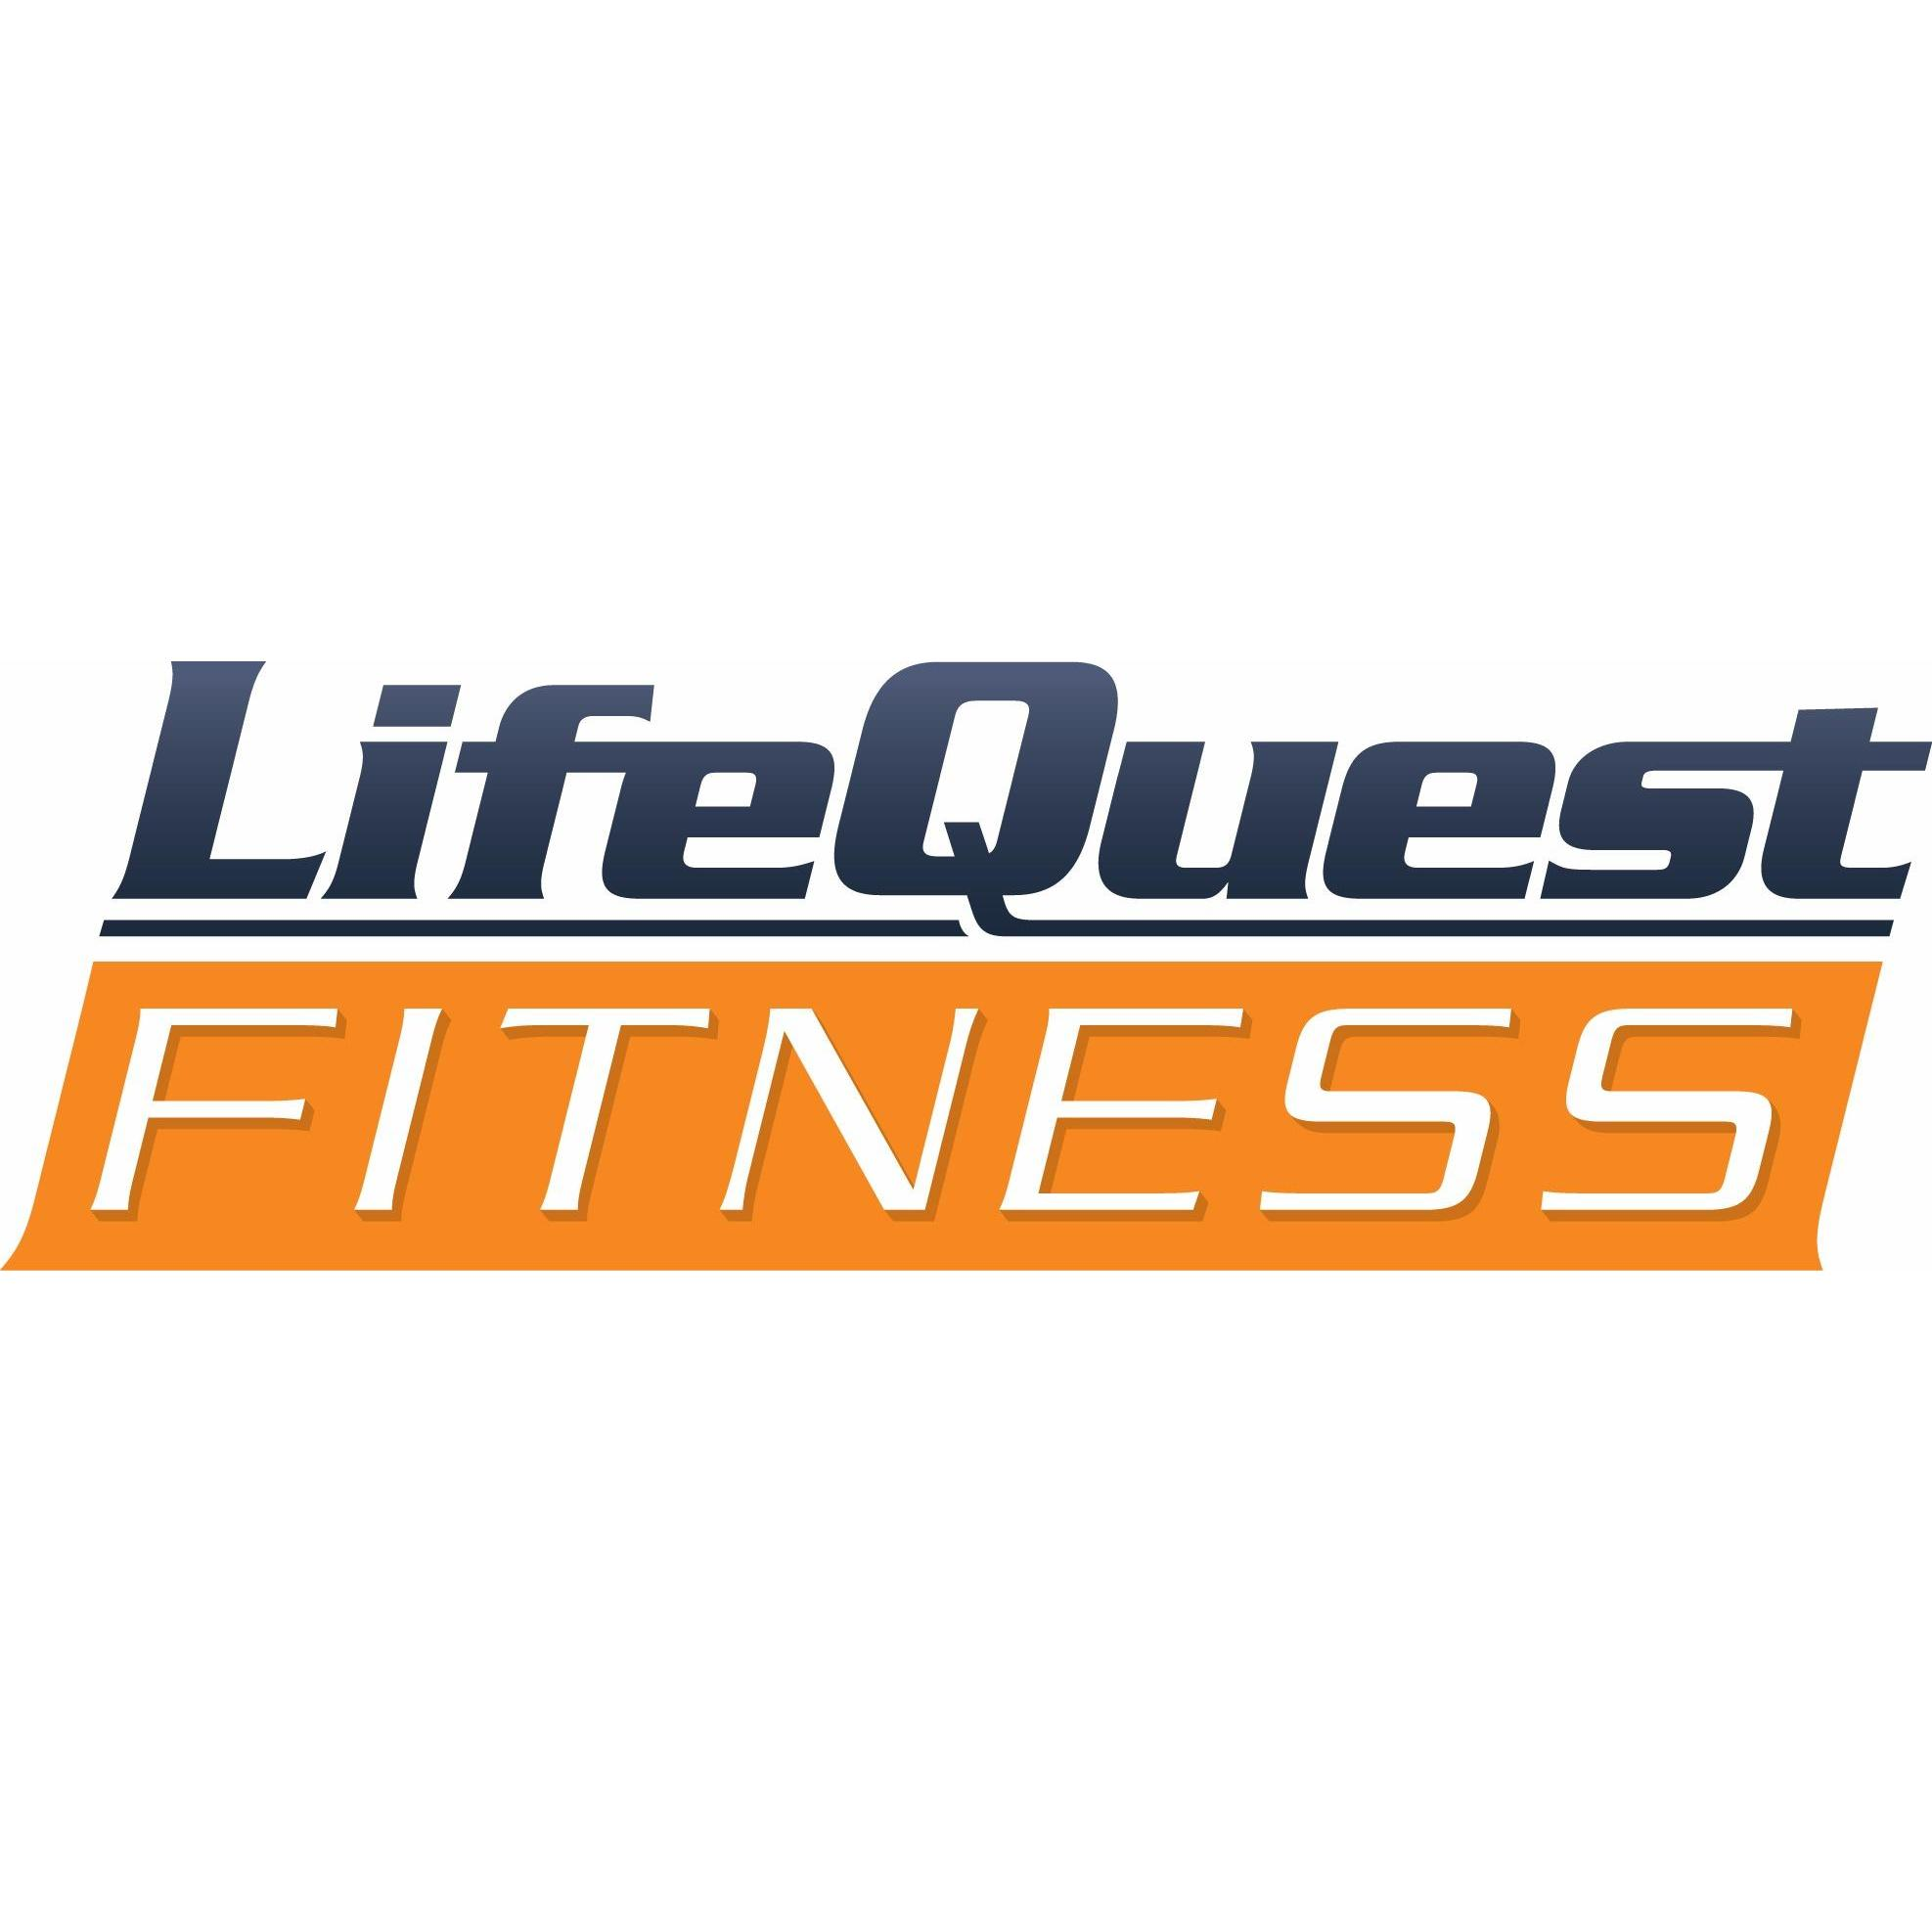 LifeQuest Fitness - Pasco, WA - Health Clubs & Gyms